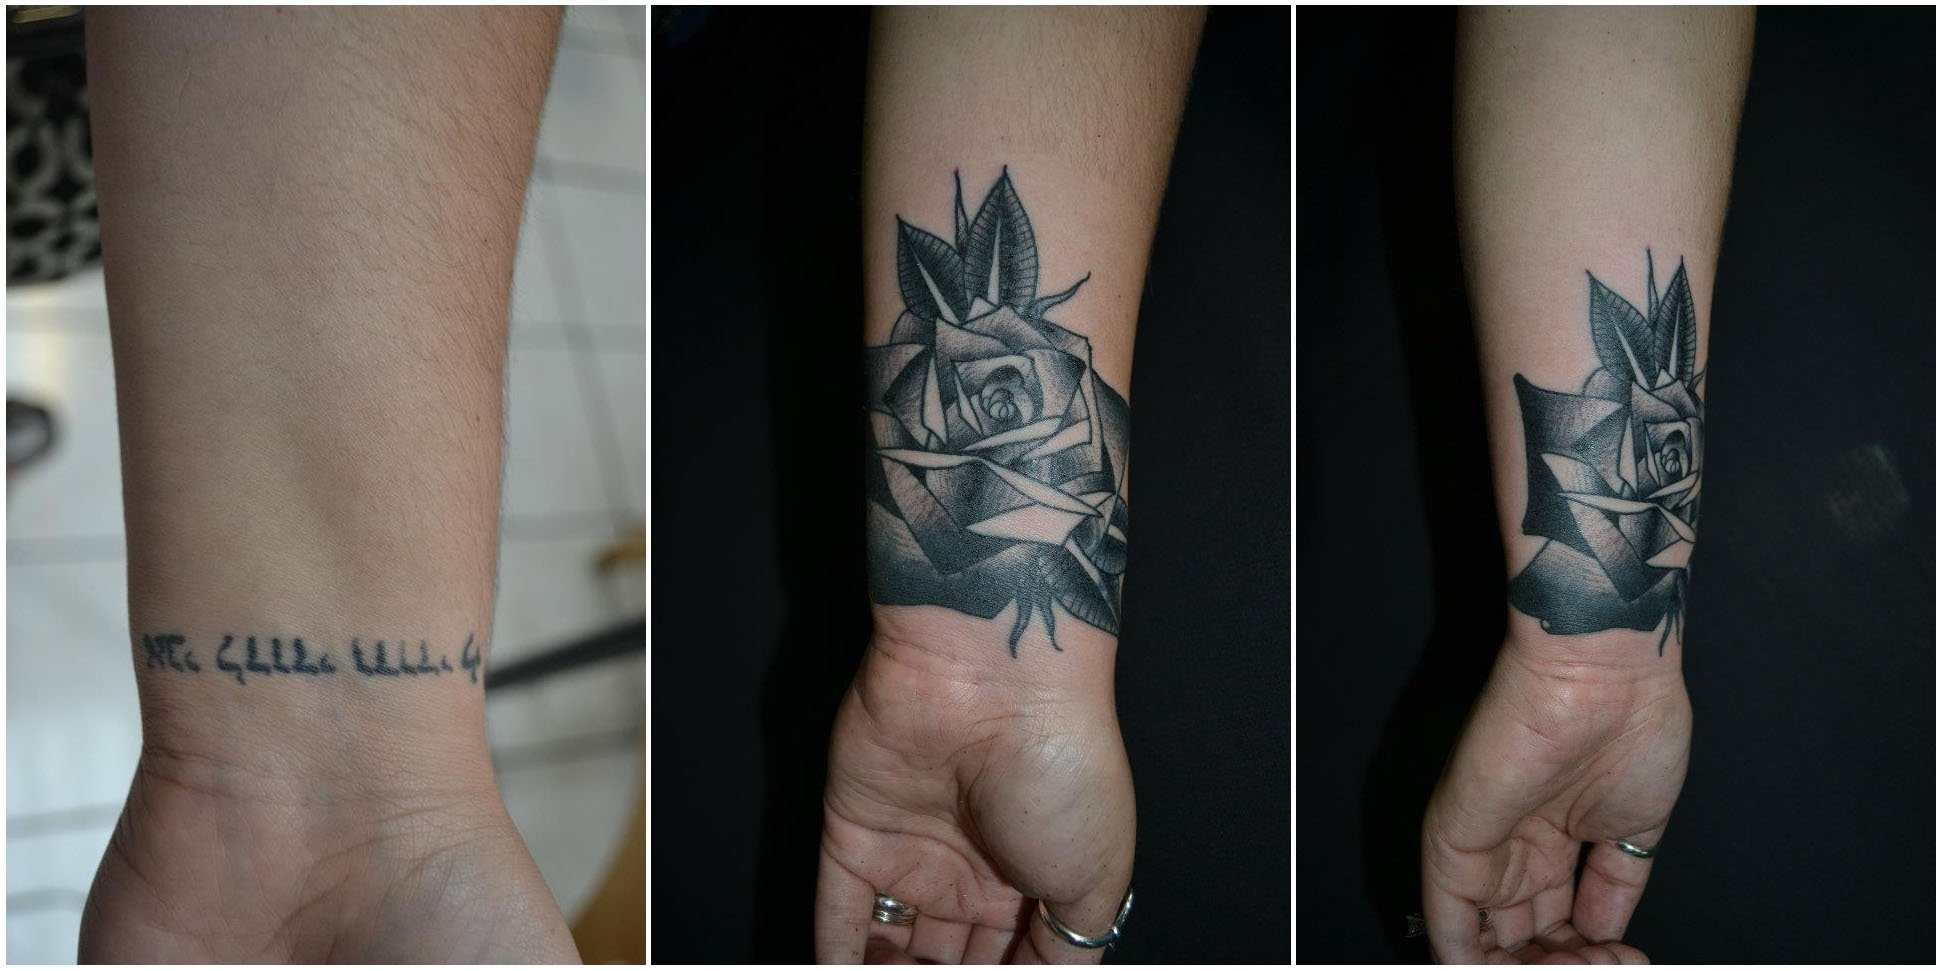 10 Fabulous Black Tattoo Cover Up Ideas lotus tattoo raymond wallace tattooing black rose cover up 3 2020